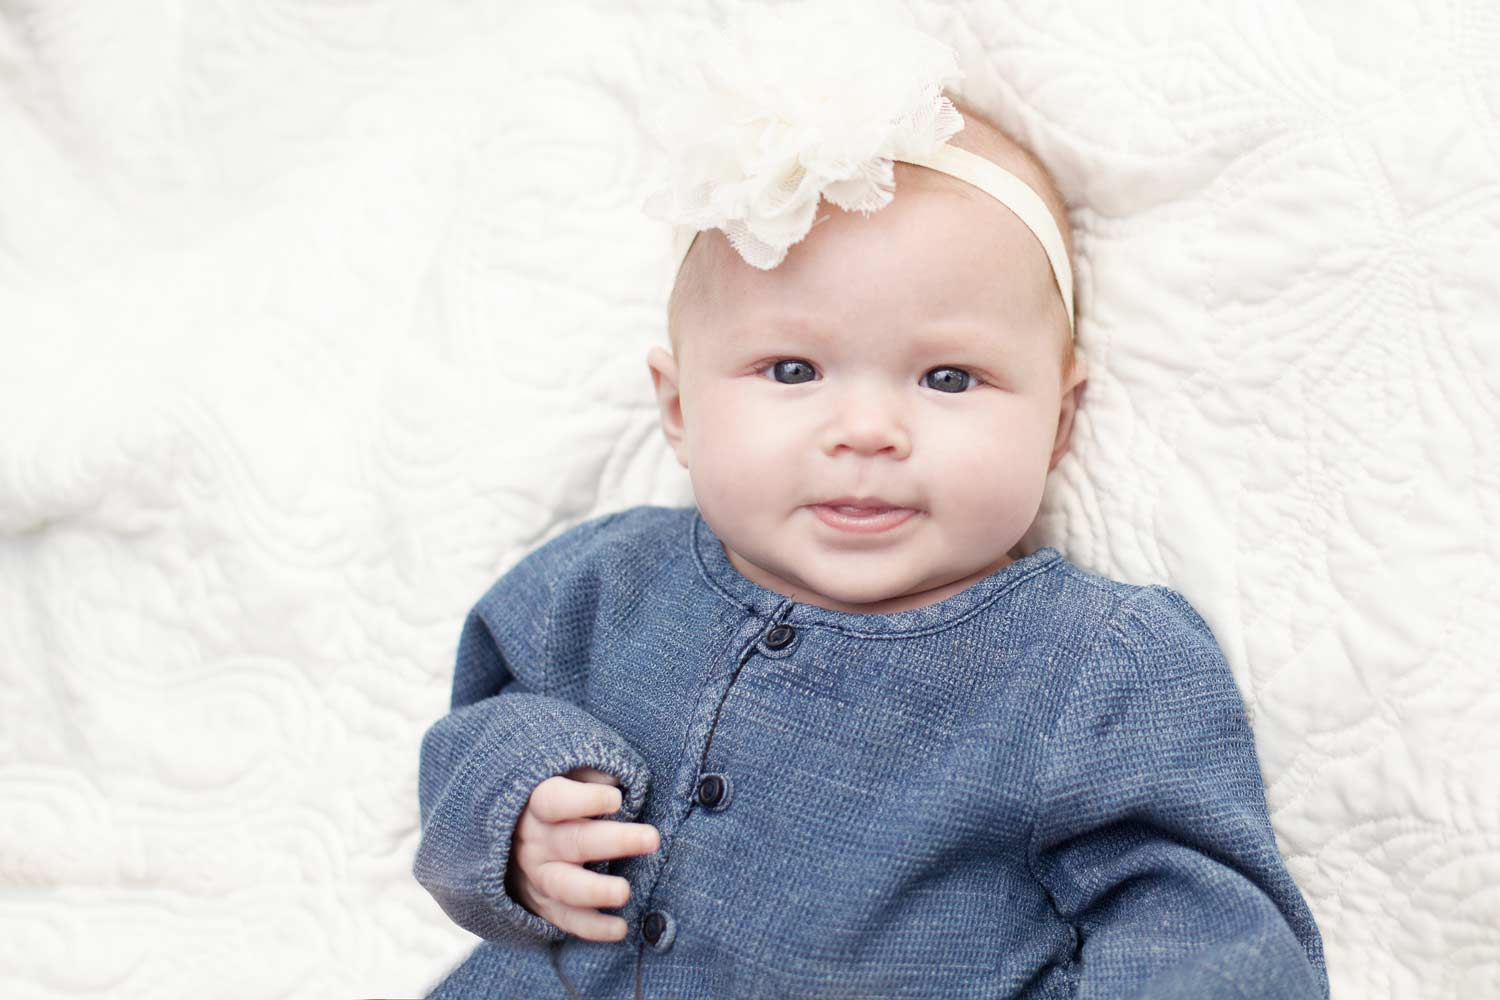 Baby_Lilly_3_Month-15-2_w.jpg